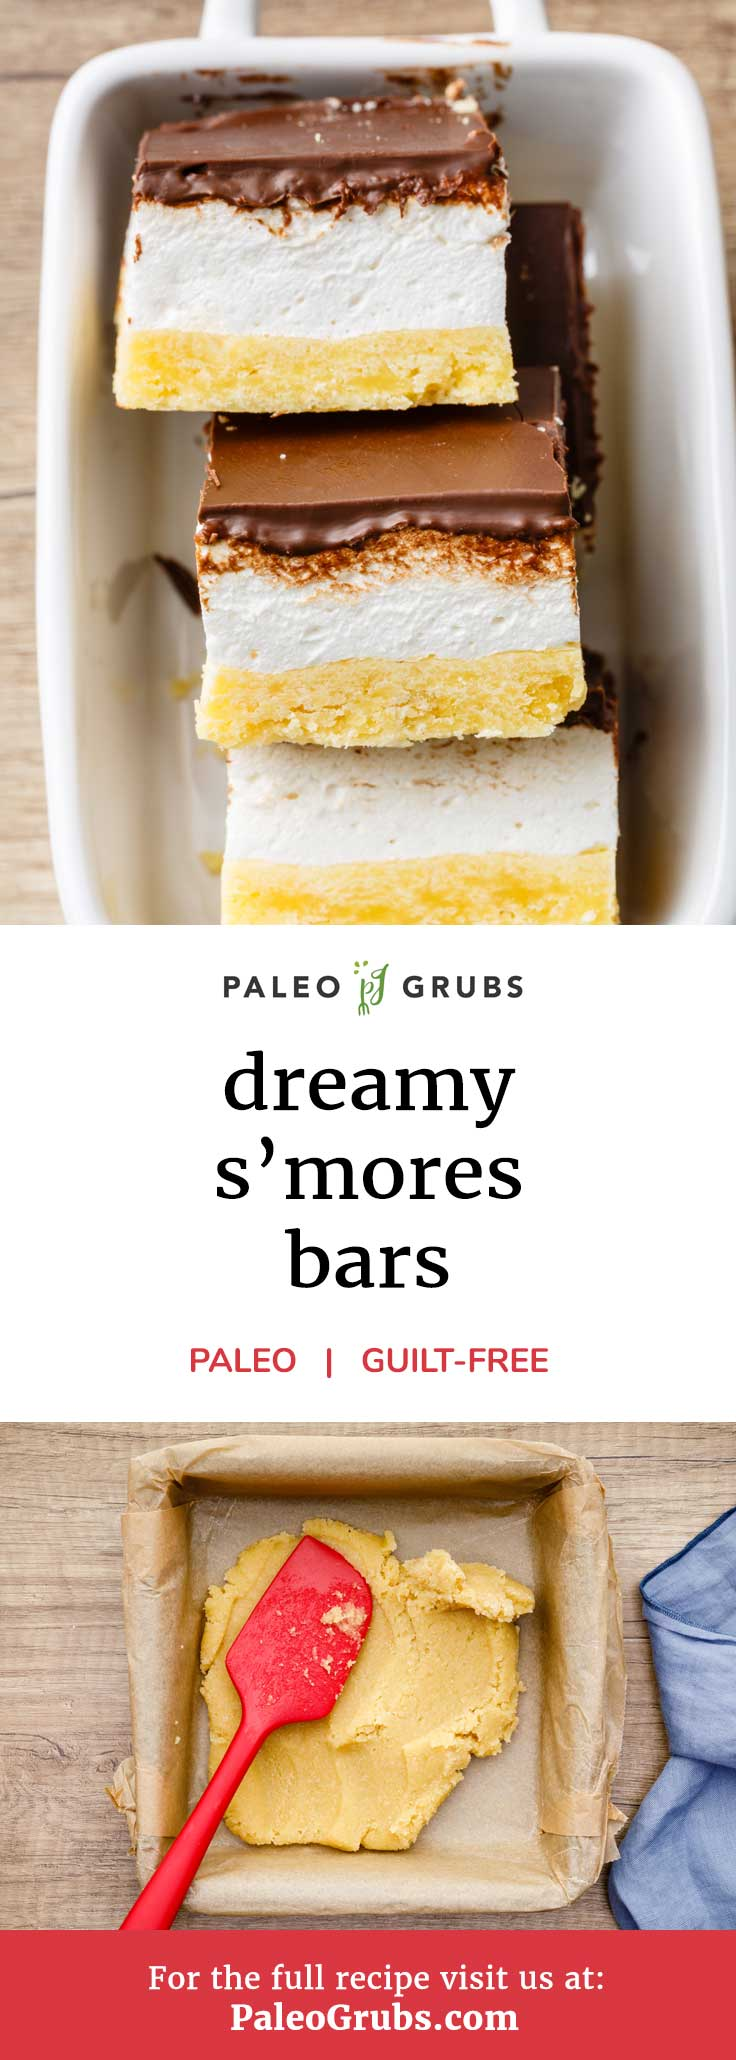 These s'mores bars are SO GOOD!